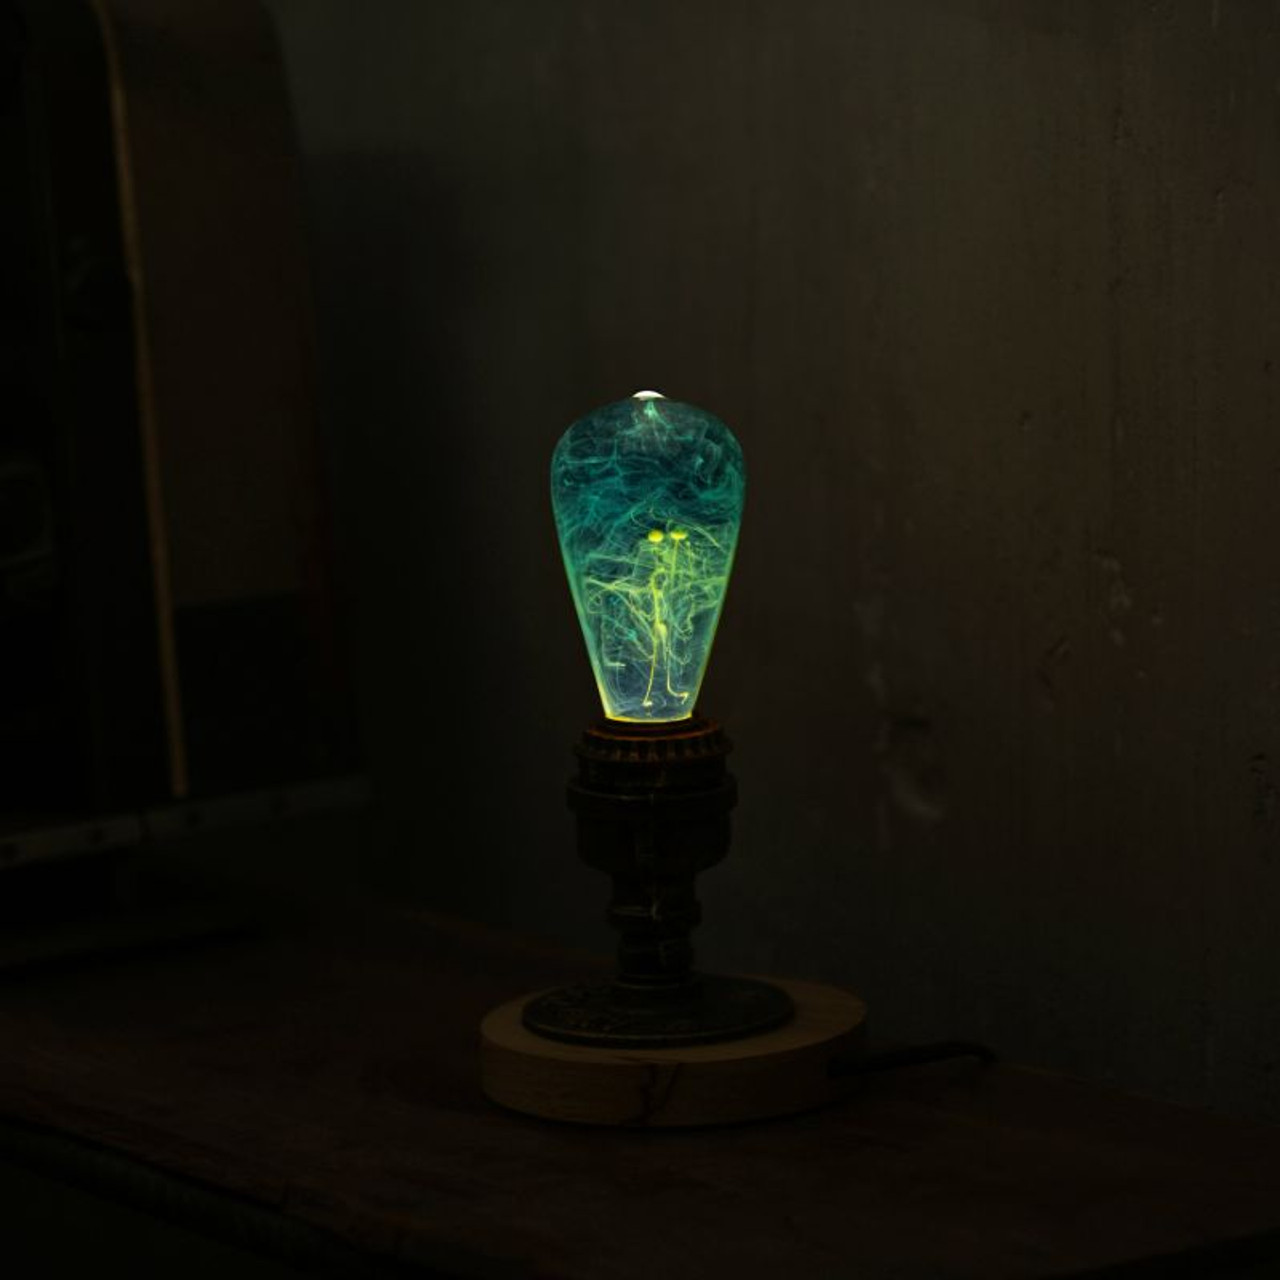 EP Light Mind Bulb Art Fixture Lamp with Optional Modern or Vintage Base Stand